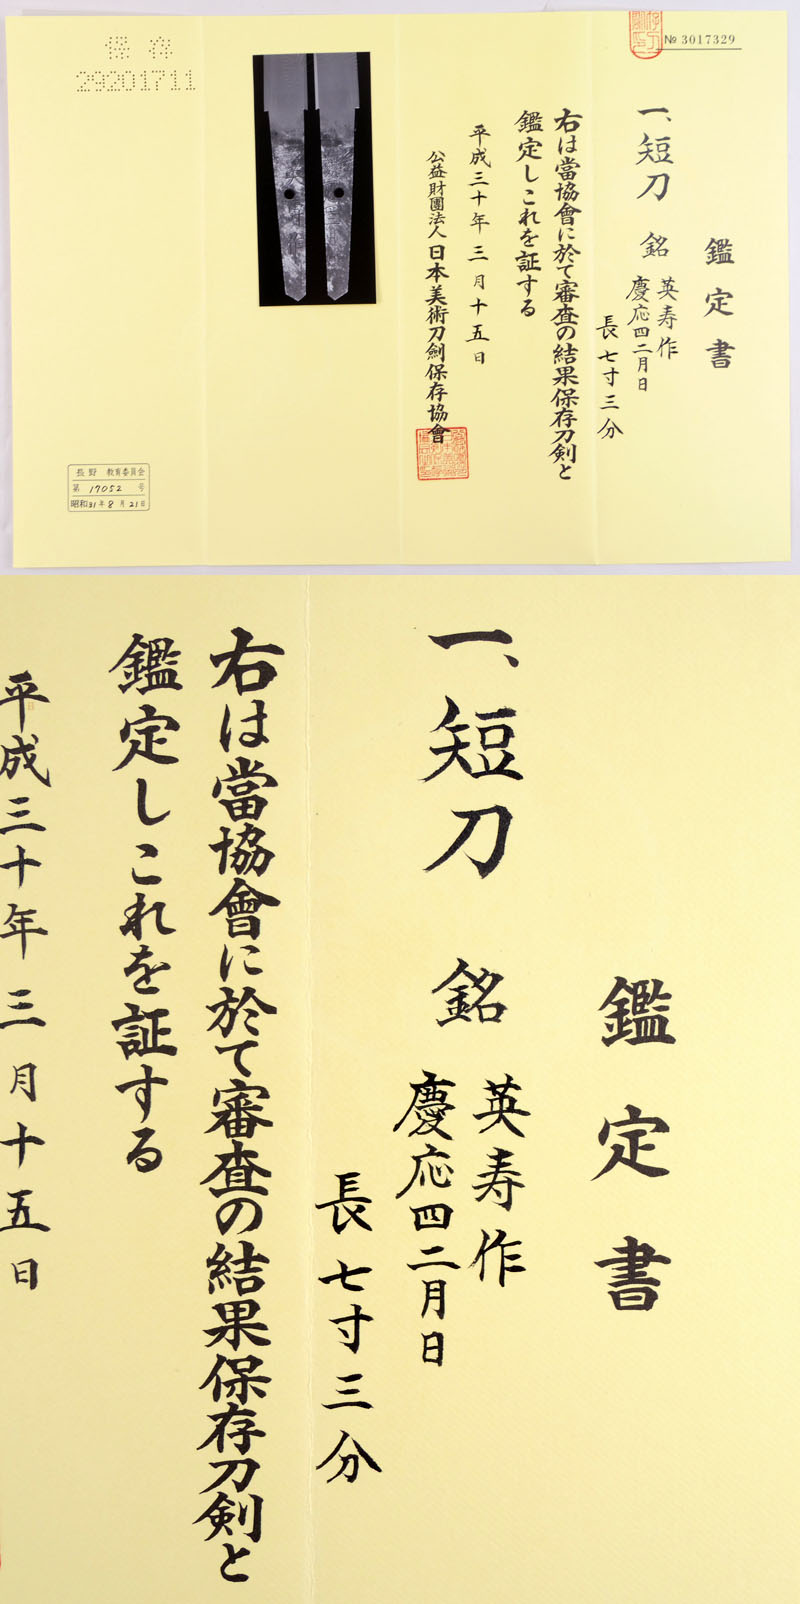 英寿作 Picture of Certificate